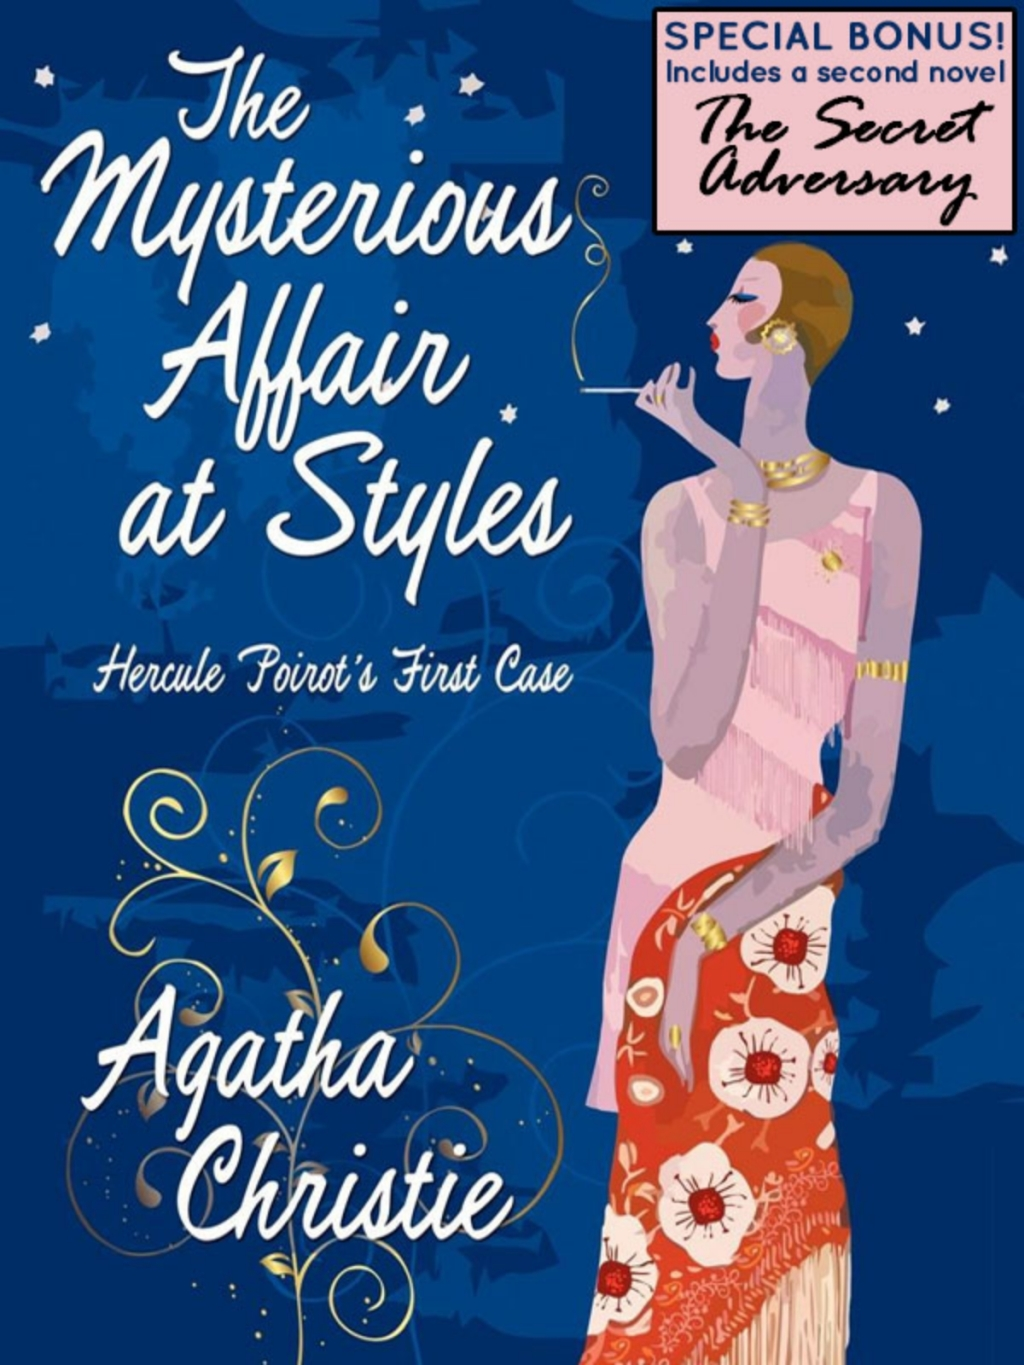 The Mysterious Affair at Styles: Hercule Poirot's First Case (Special Edition) (ebook) eBooks